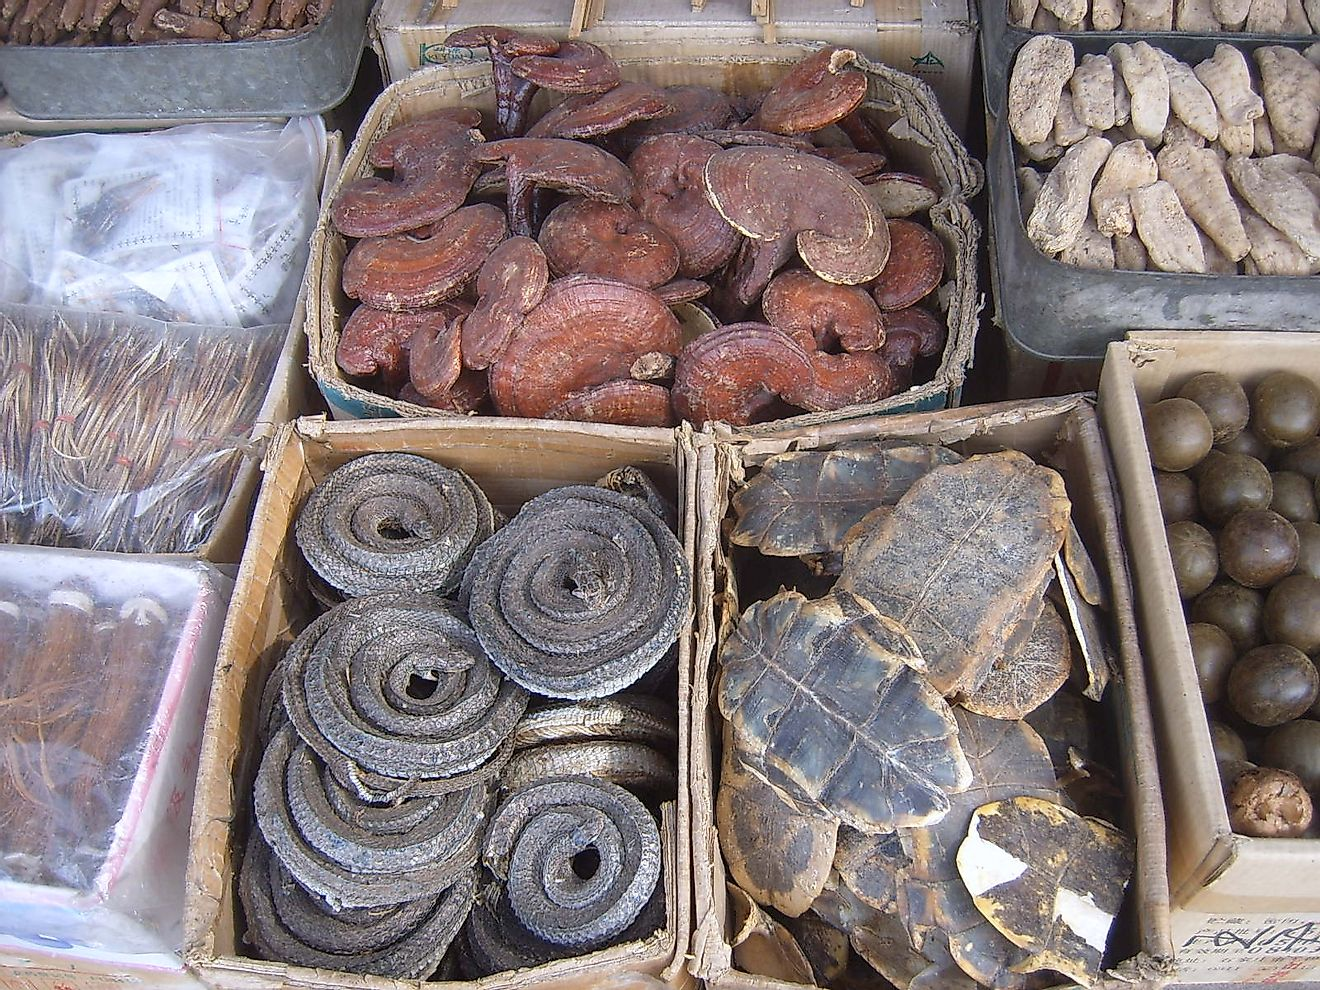 "Assorted dried plant and animal parts used in traditional Chinese medicines, clockwise from top left corner: dried Lingzhi (lit. ""spirit mushrooms""), ginseng, Luo Han Guo, turtle shell underbelly (plastron), and dried curled snakes. Image credit: User:Vbe"